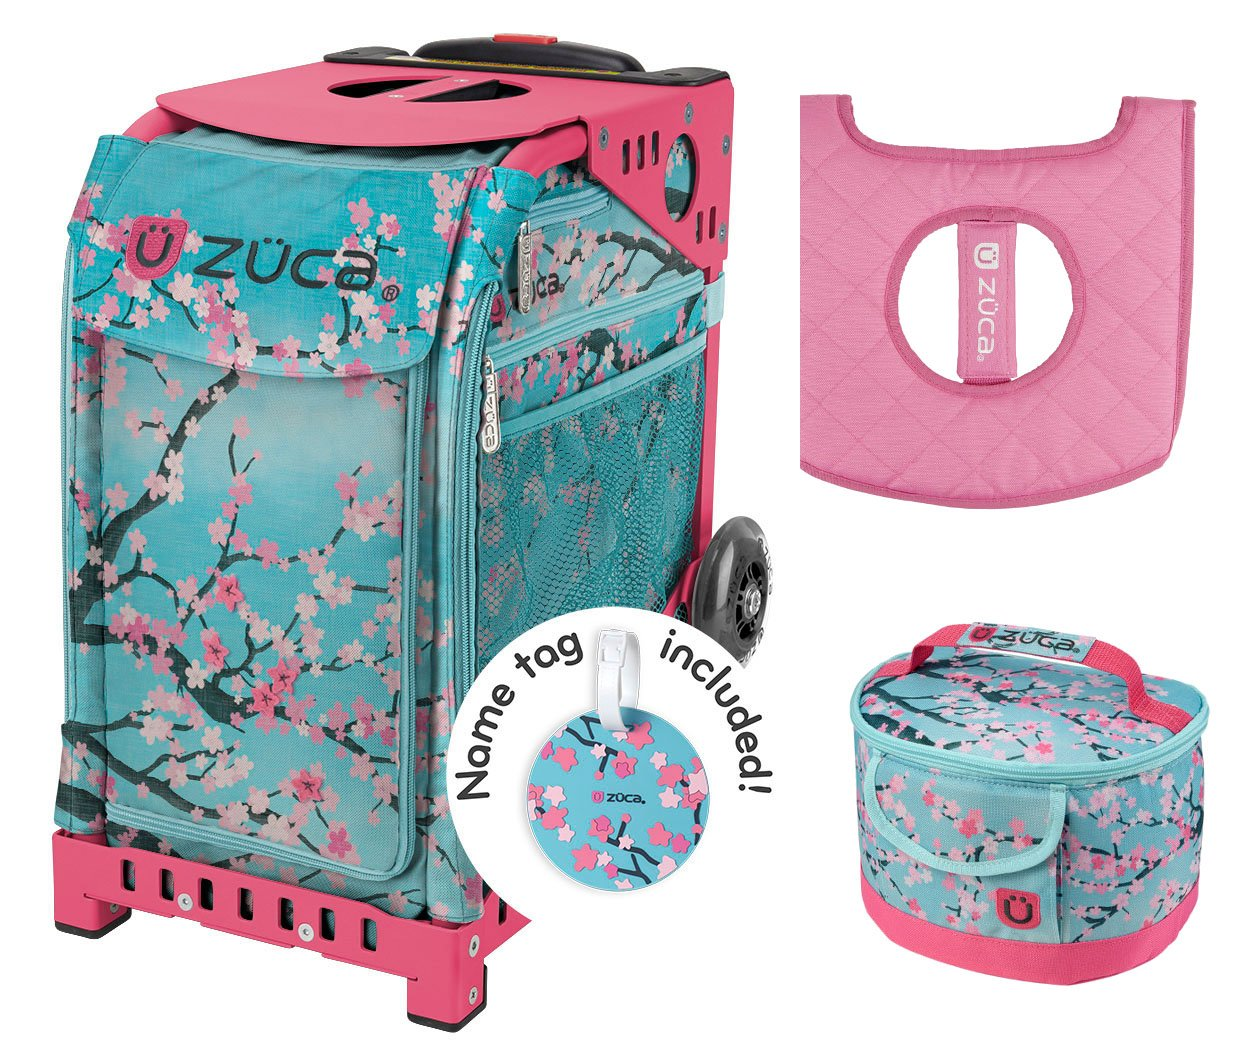 Zuca Sport Bag - Hanami with Gift Lunchbox and Seat Cover (Pink Frame) by ZUCA